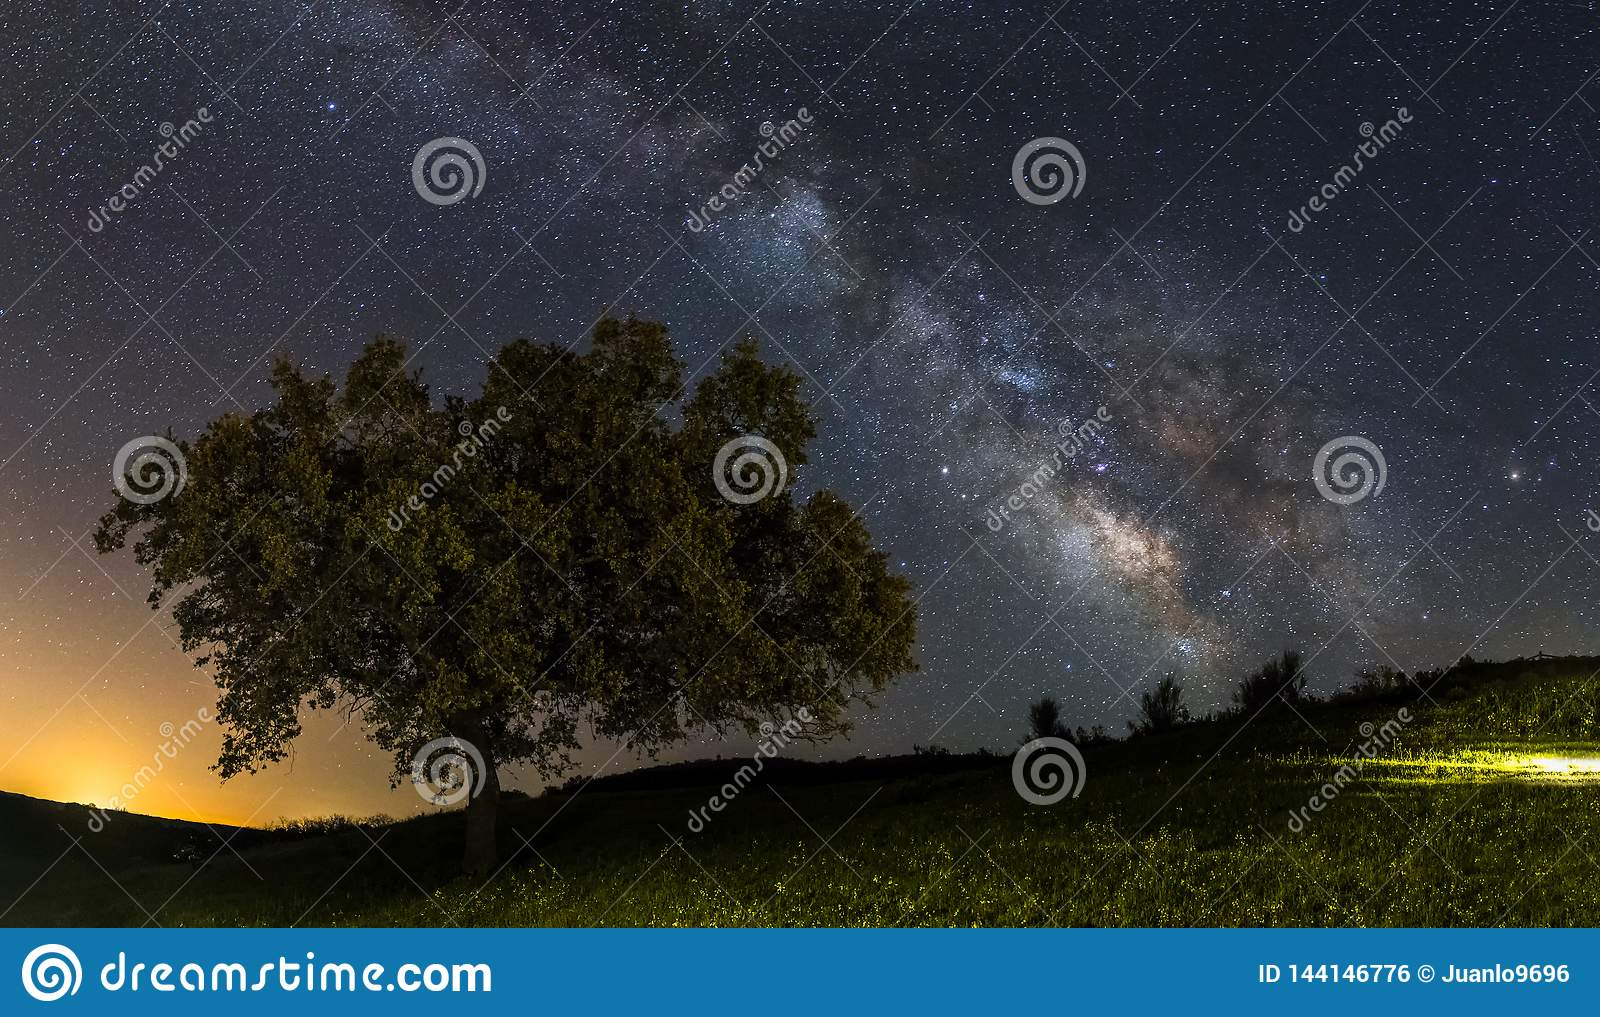 Milky way and the tree